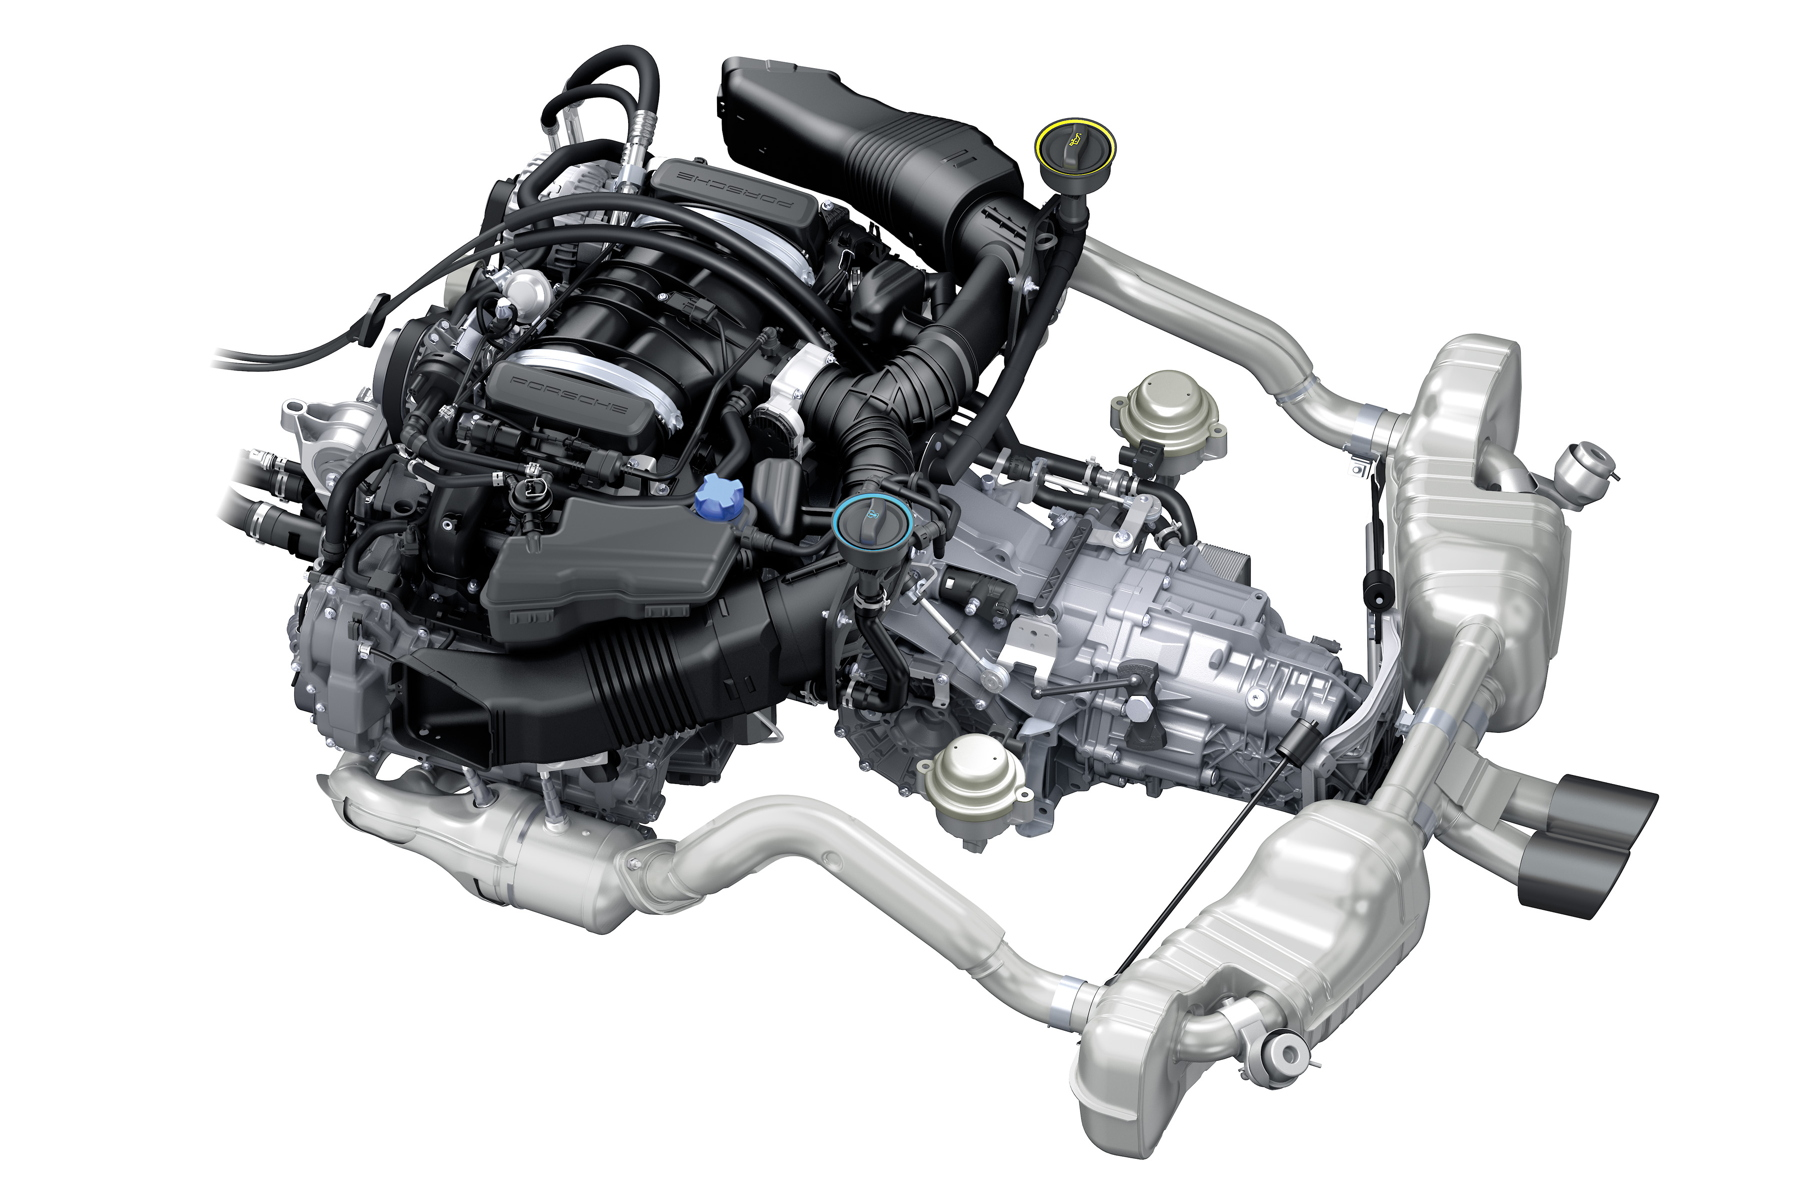 9A1 engine from the GT4 road car will be retained in 385hp guise.